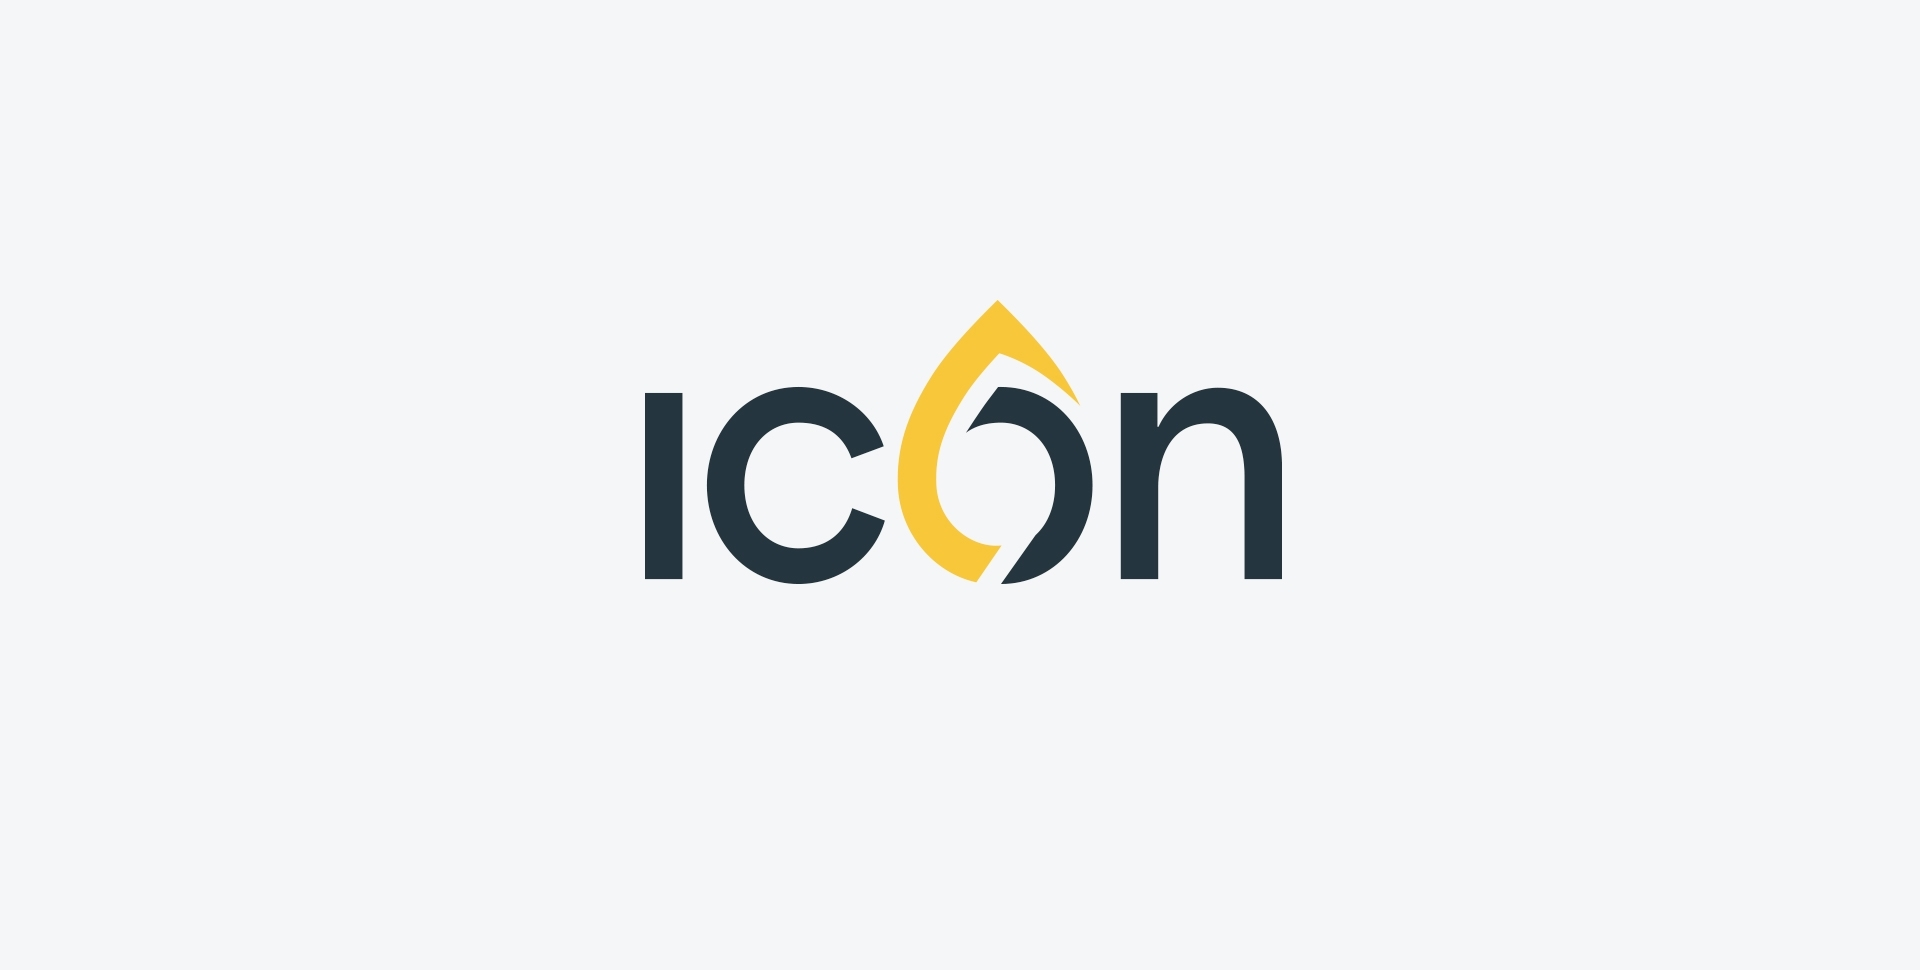 Icon logo sized